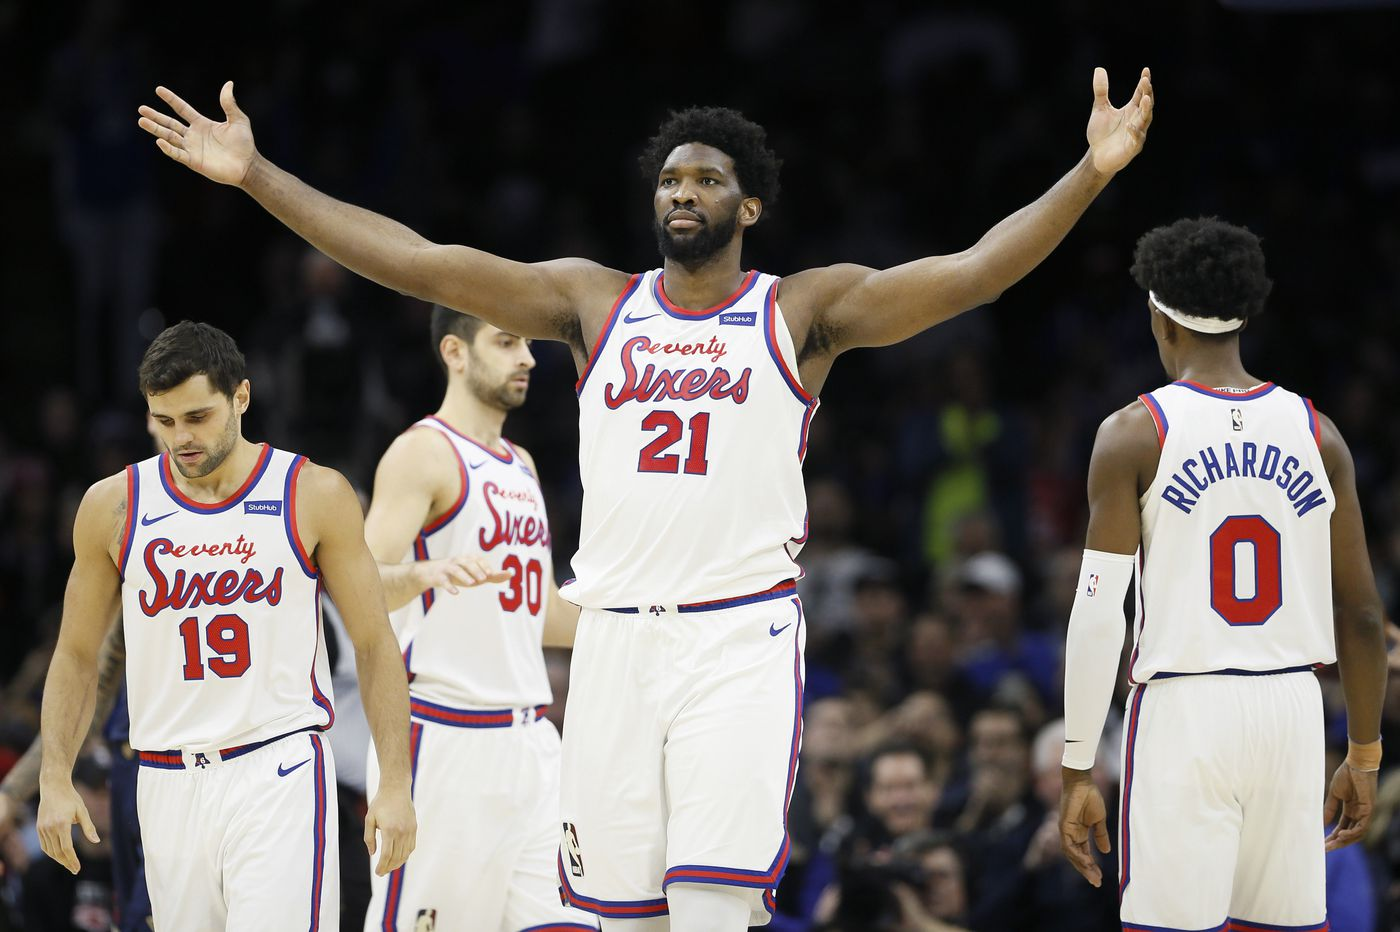 Sixers' Joel Embiid to miss game against Brooklyn Nets